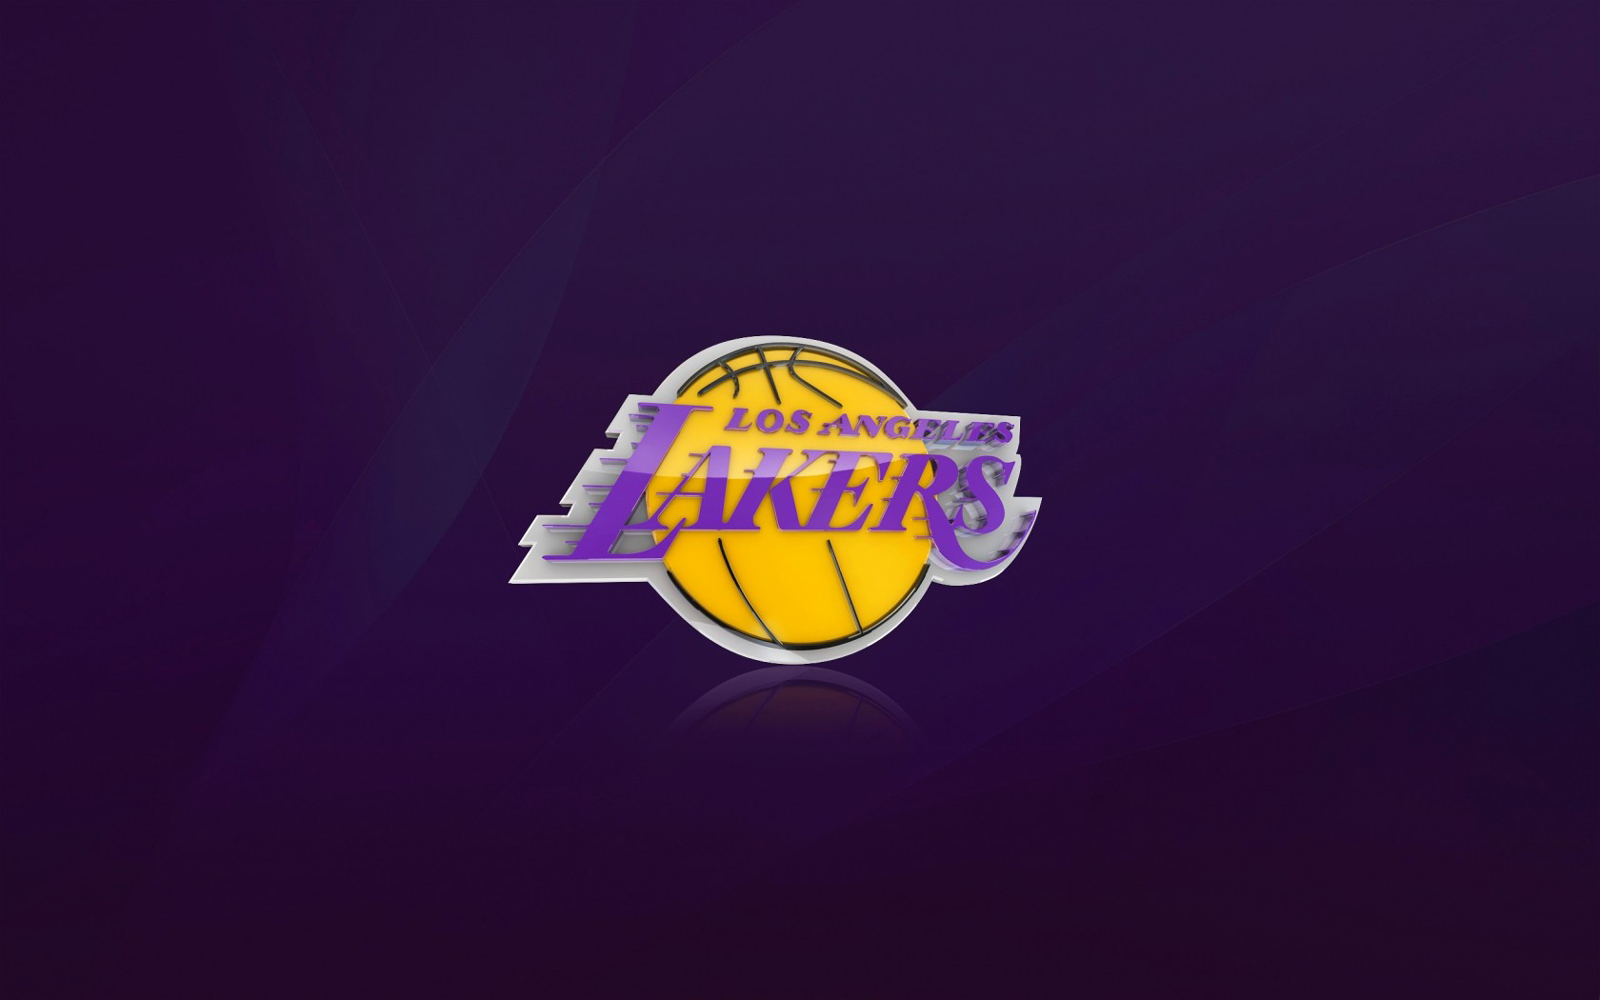 Los Angeles Lakers 2013 Logo NBA USA Hd Desktop Wallpaper | MR.SPORT